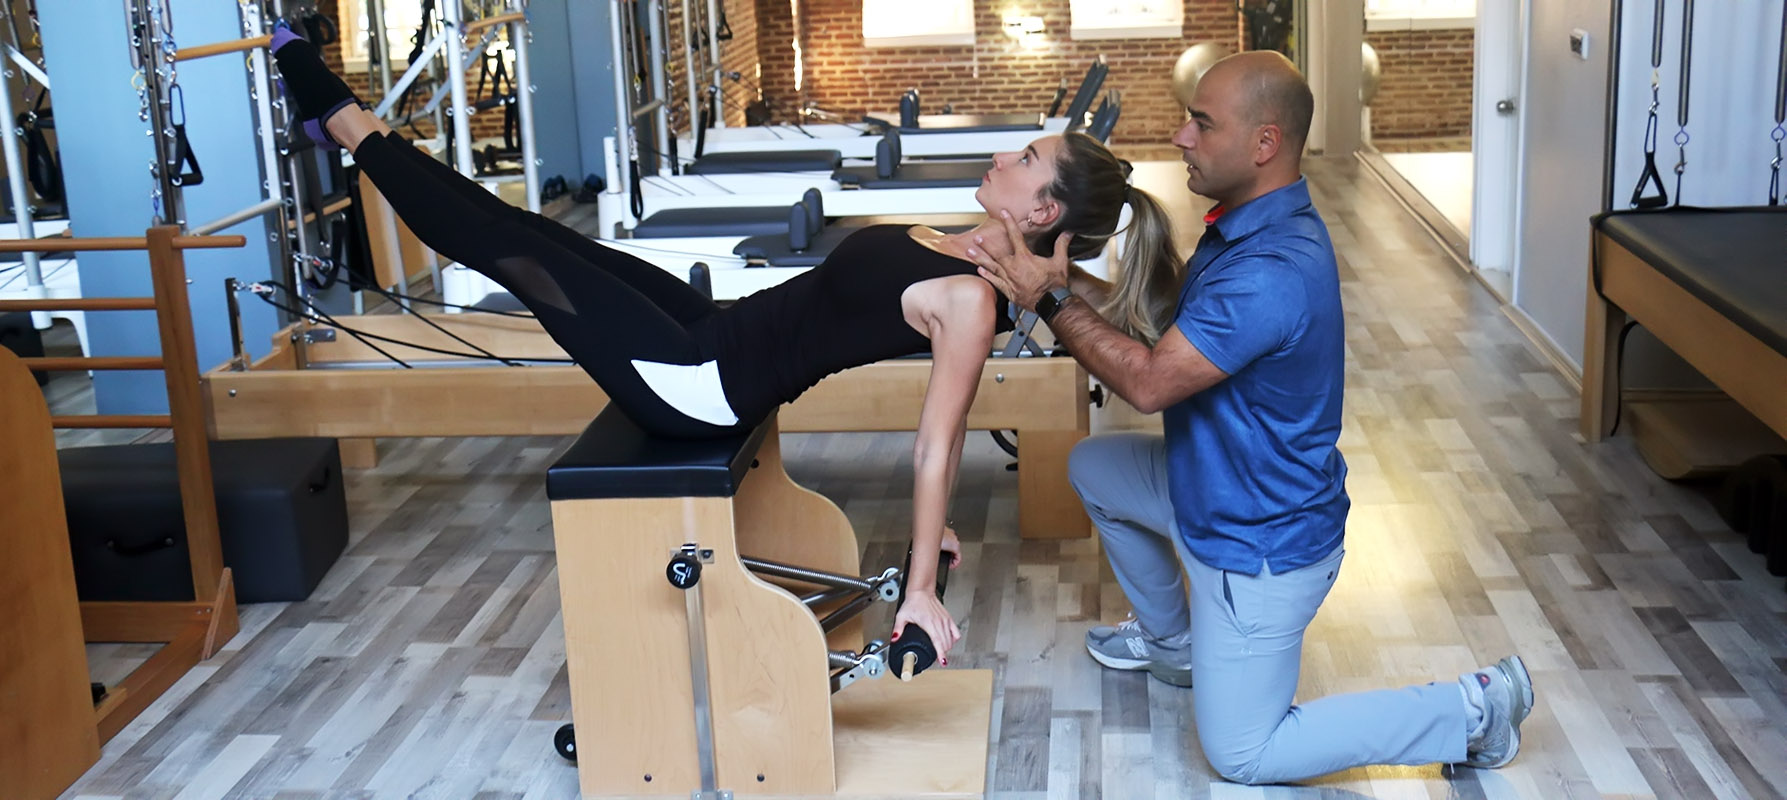 ekinoks-pilates-slider1